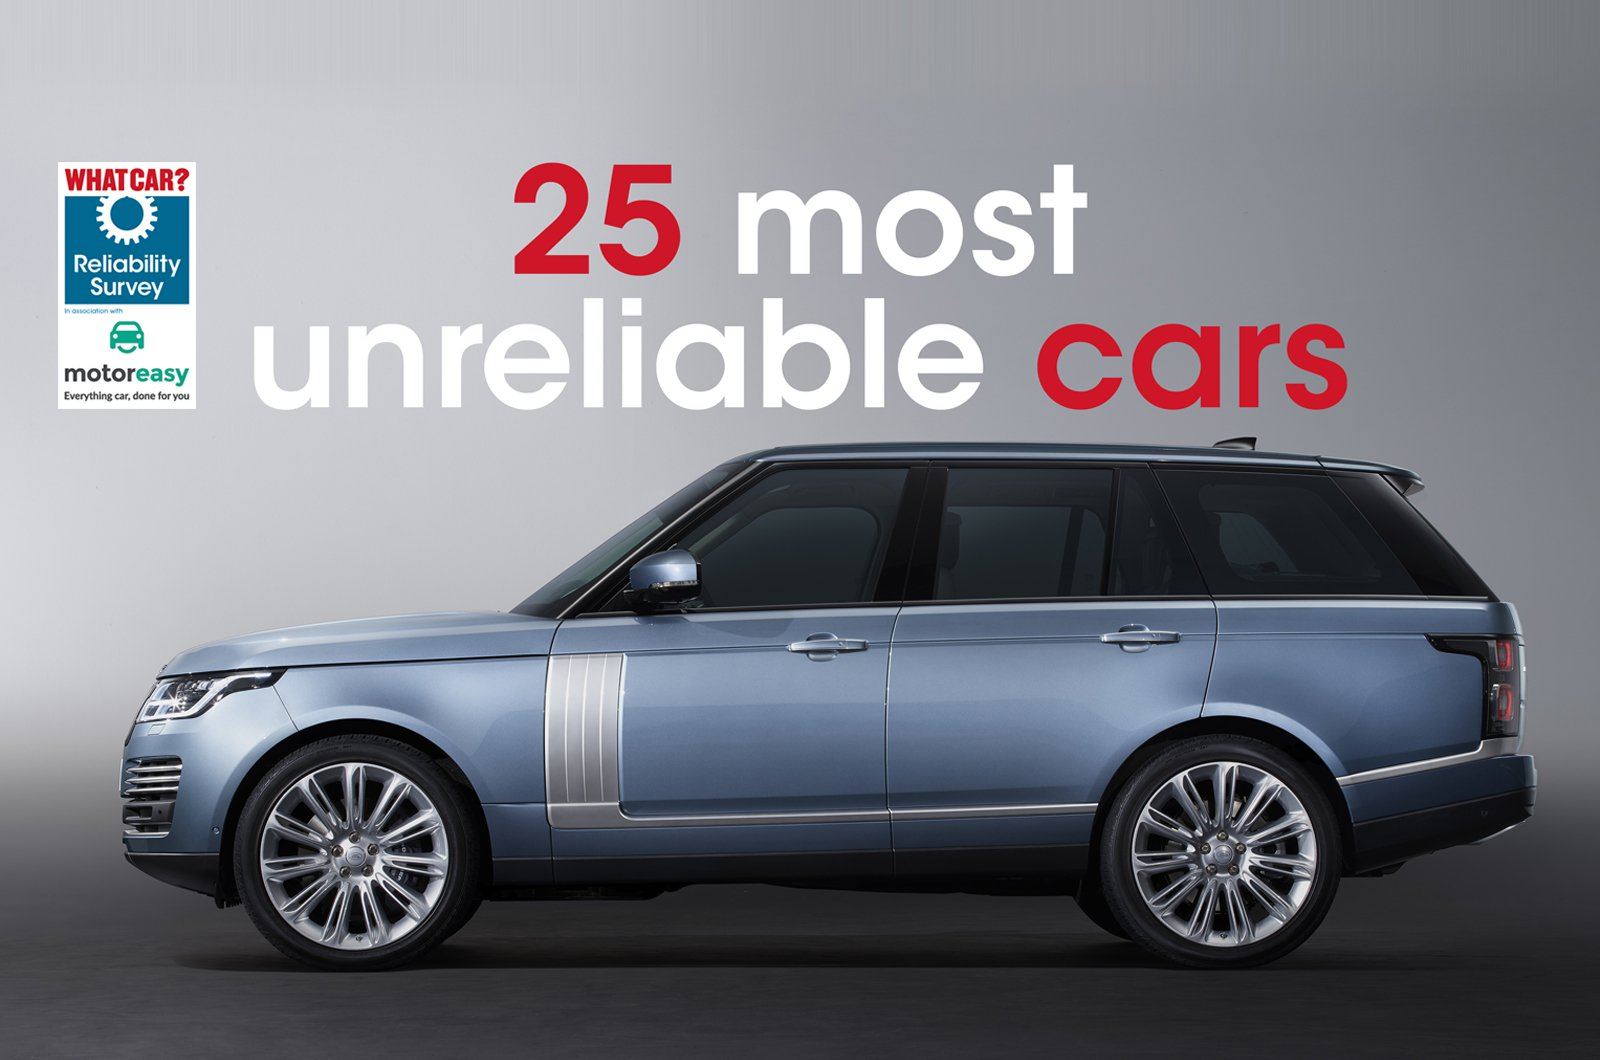 Most unreliable cars